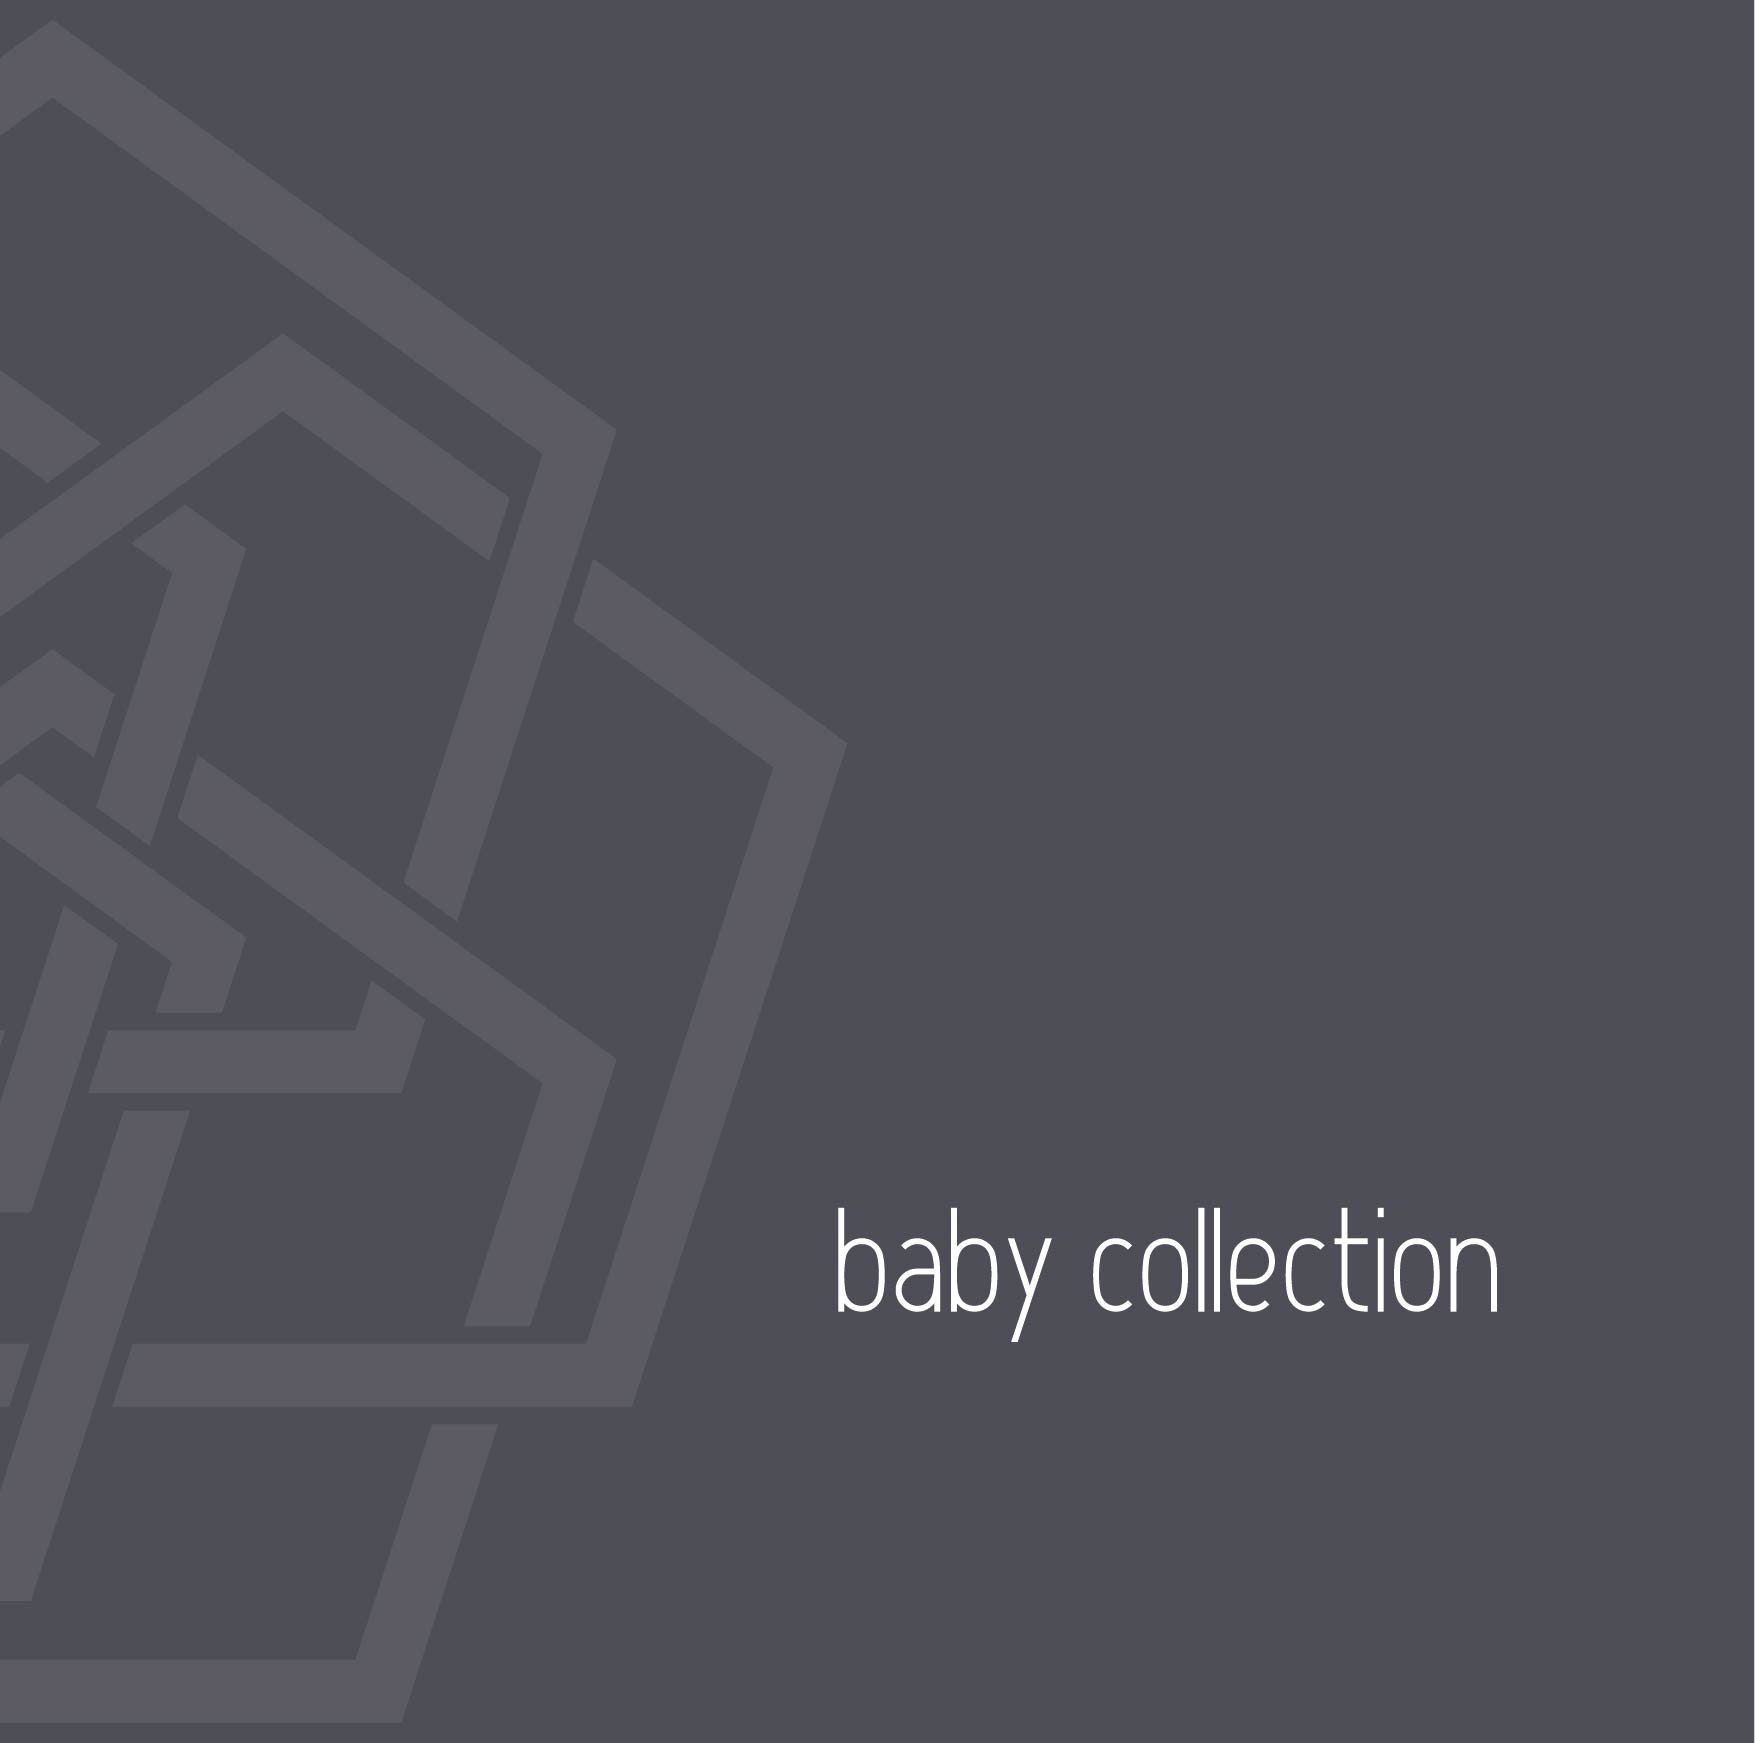 BABY COLLECTION-02